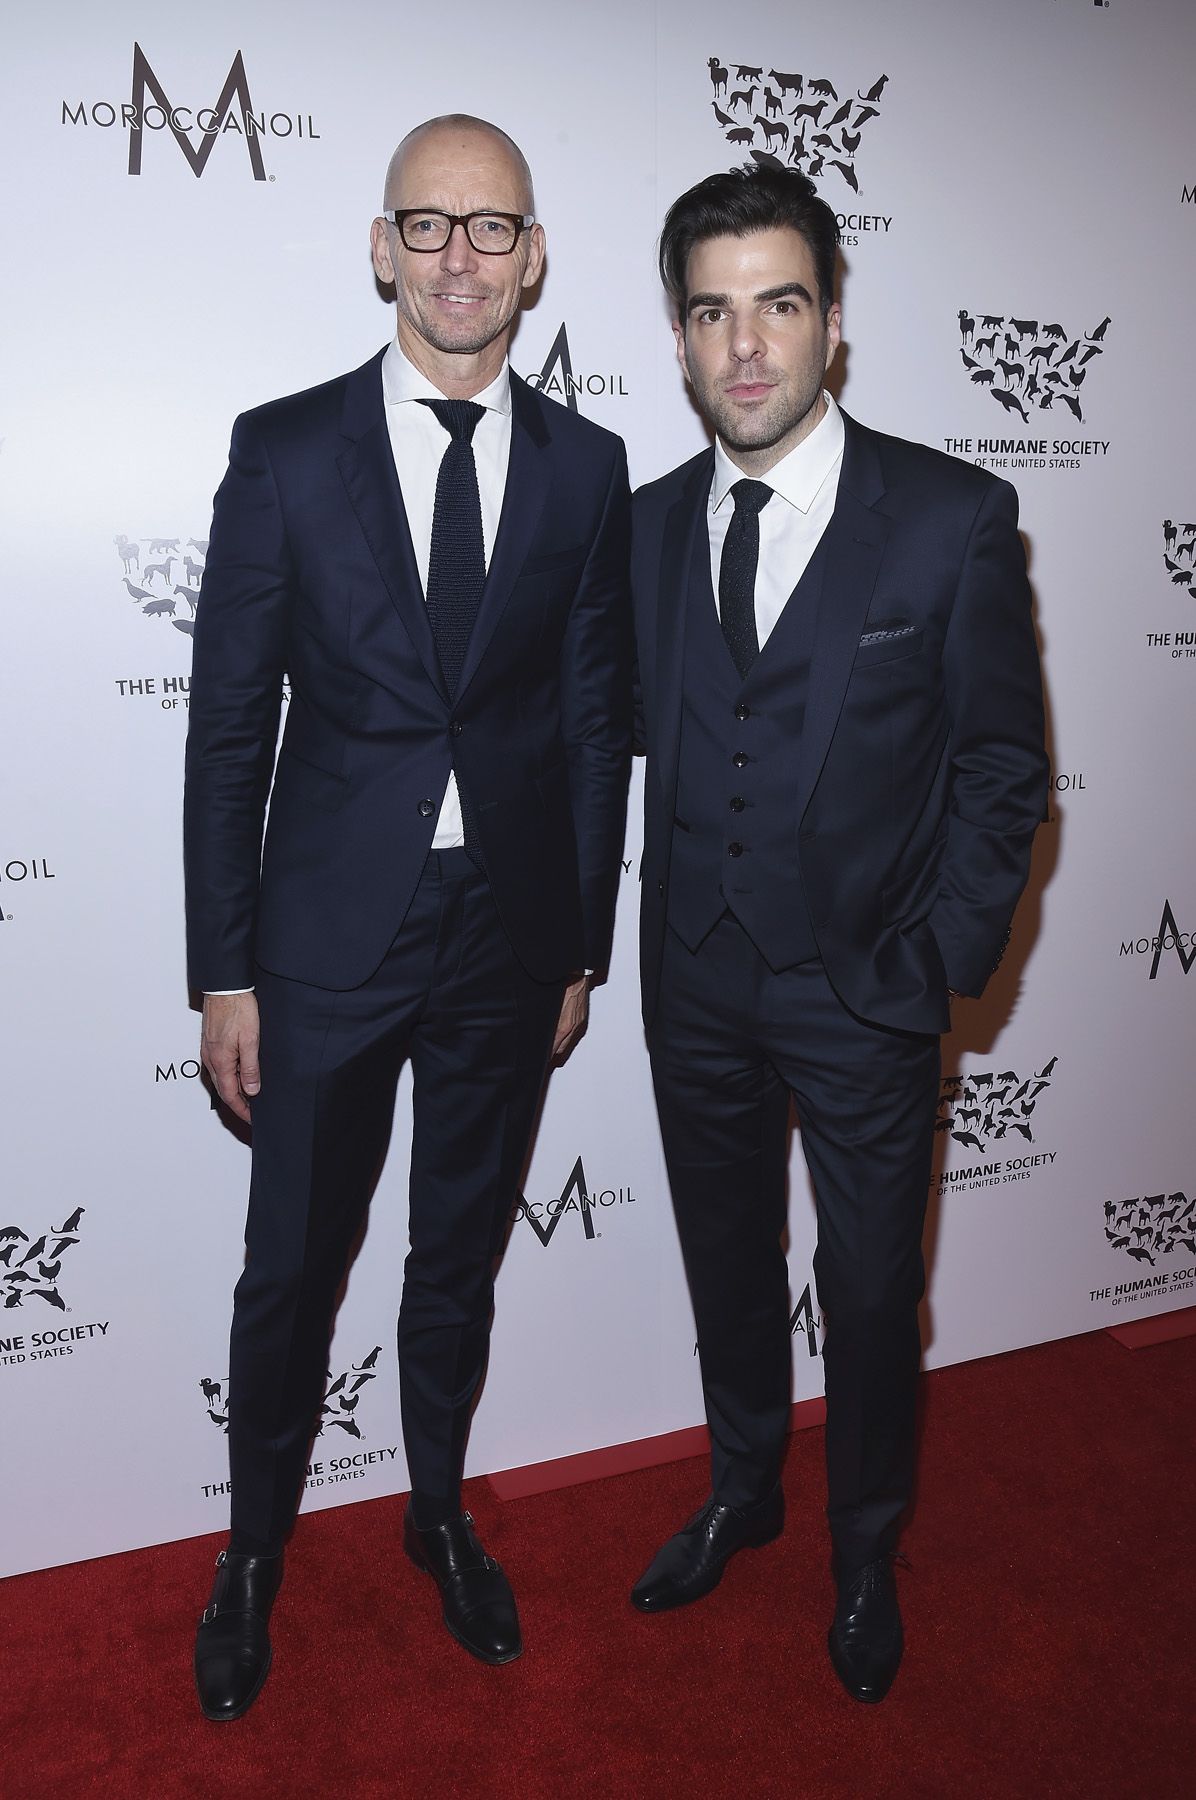 Ingo Wilts,Zachary Quinto